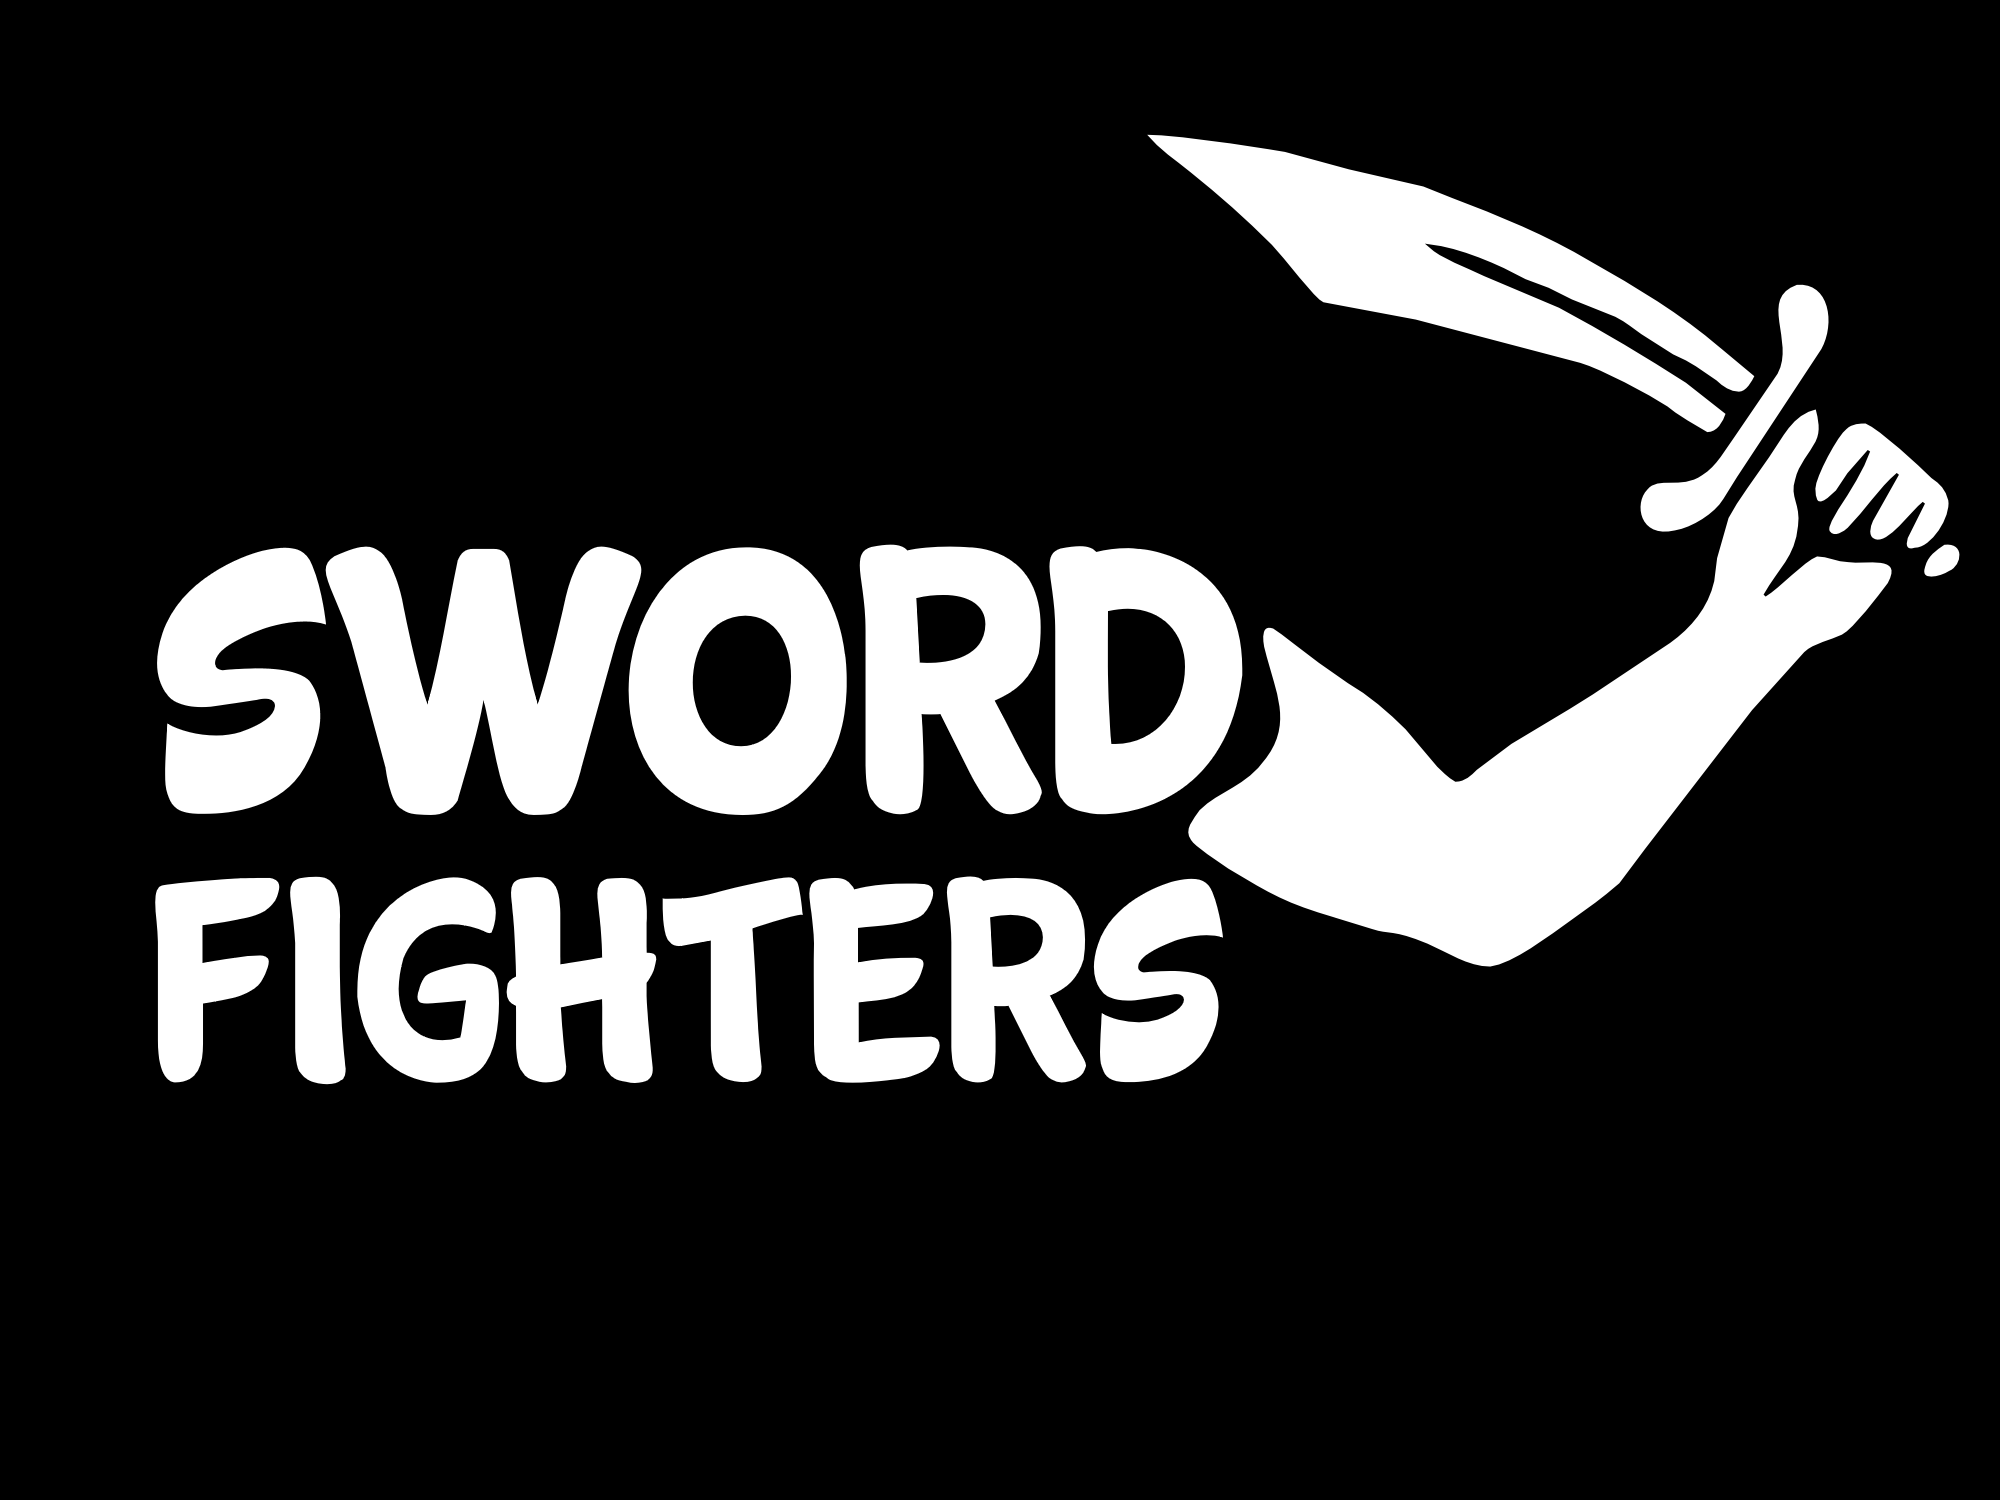 Sword Fighters Youth Group Collective